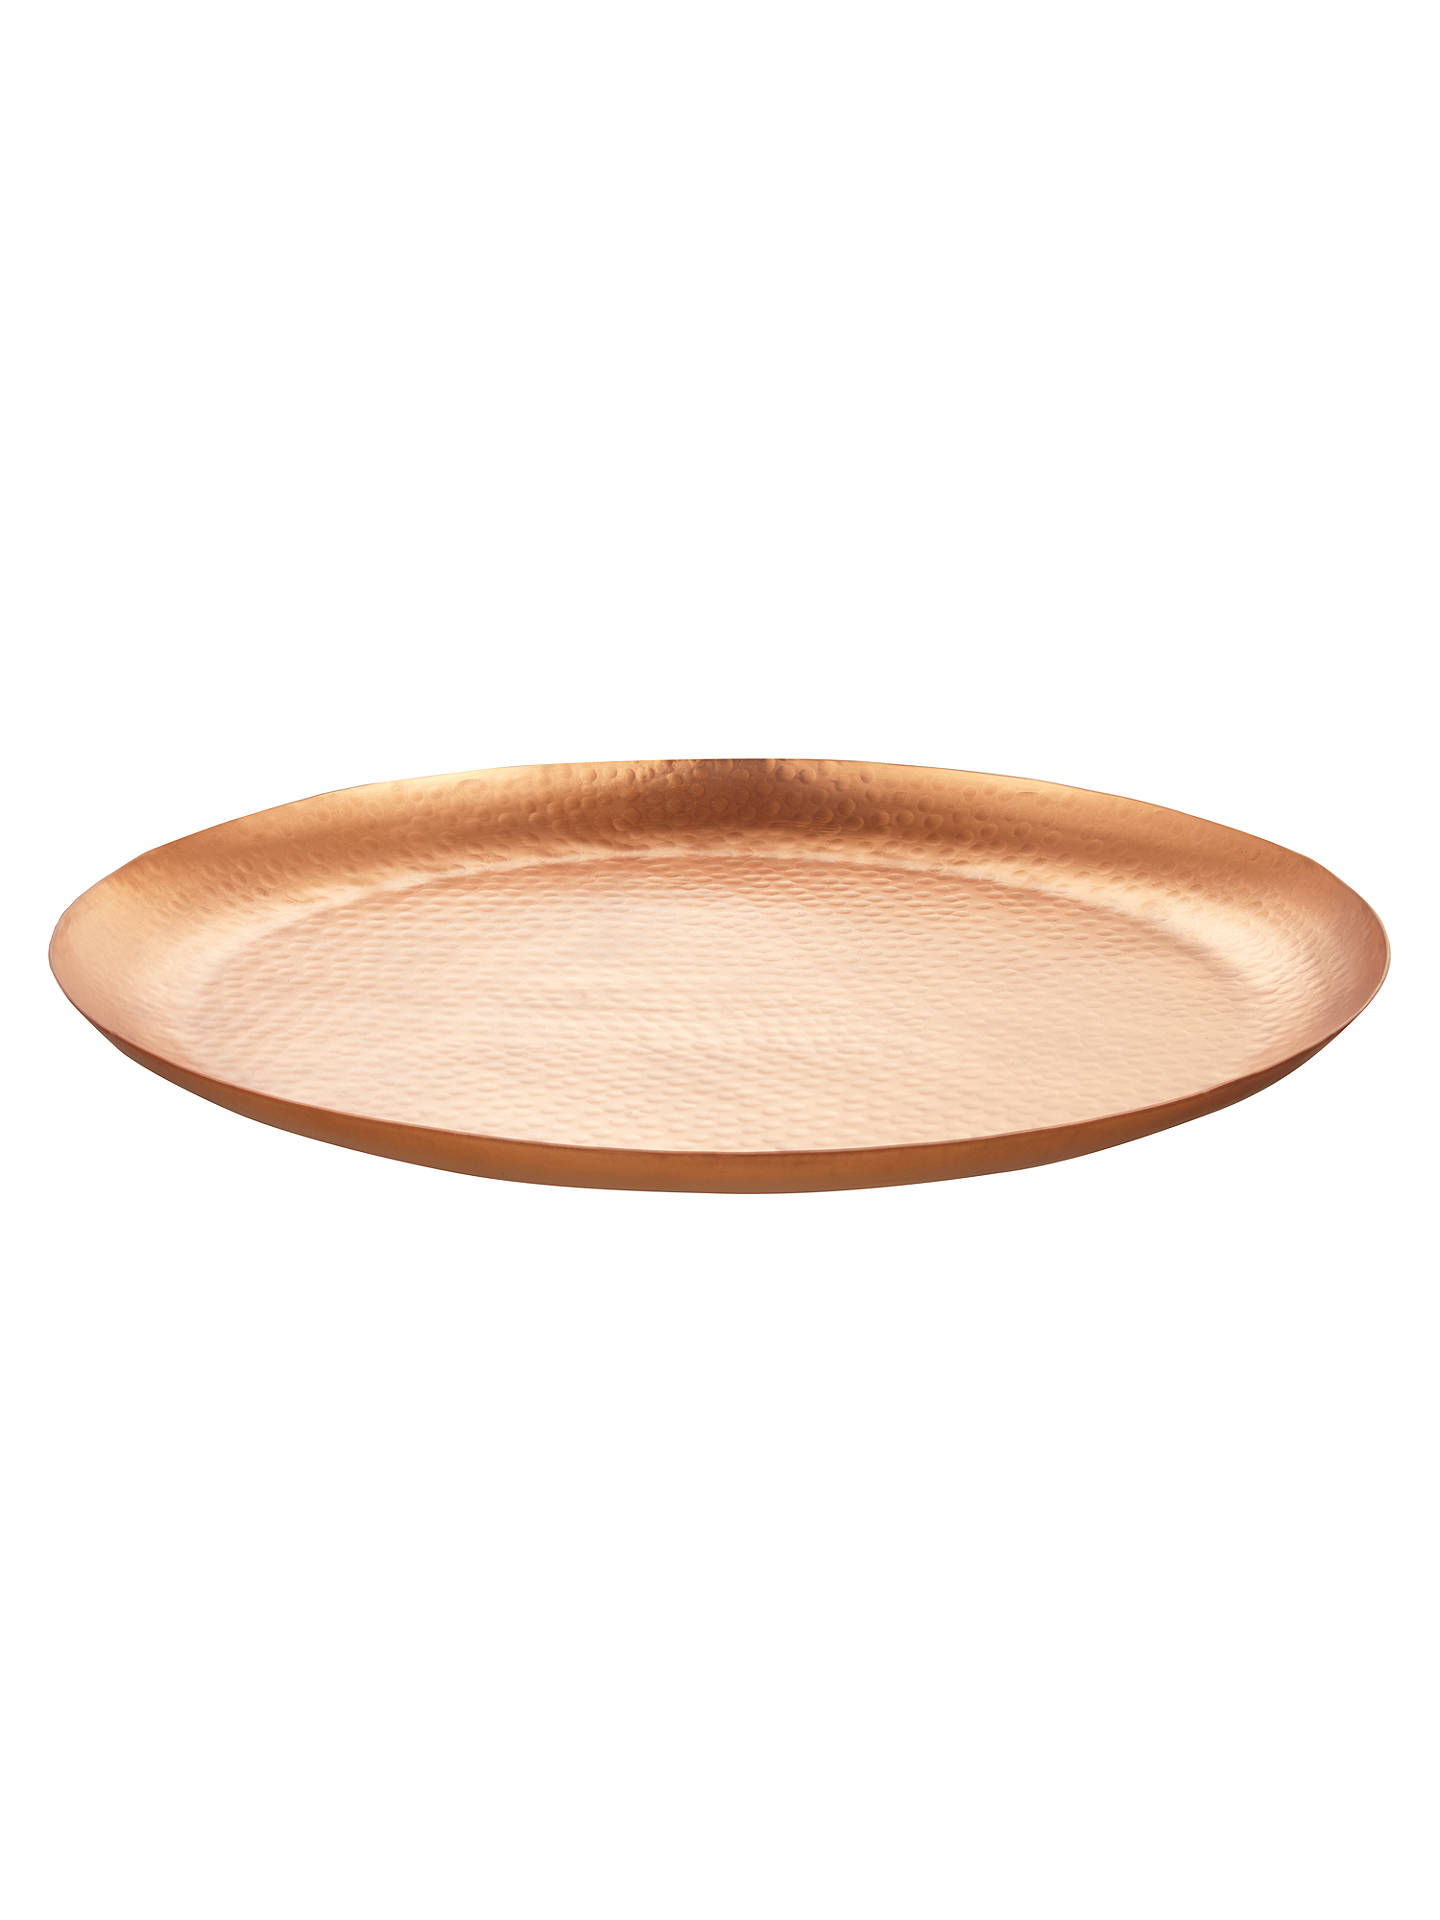 BuyJohn Lewis & Partners Hammered Large Plate, Copper Online at johnlewis.com